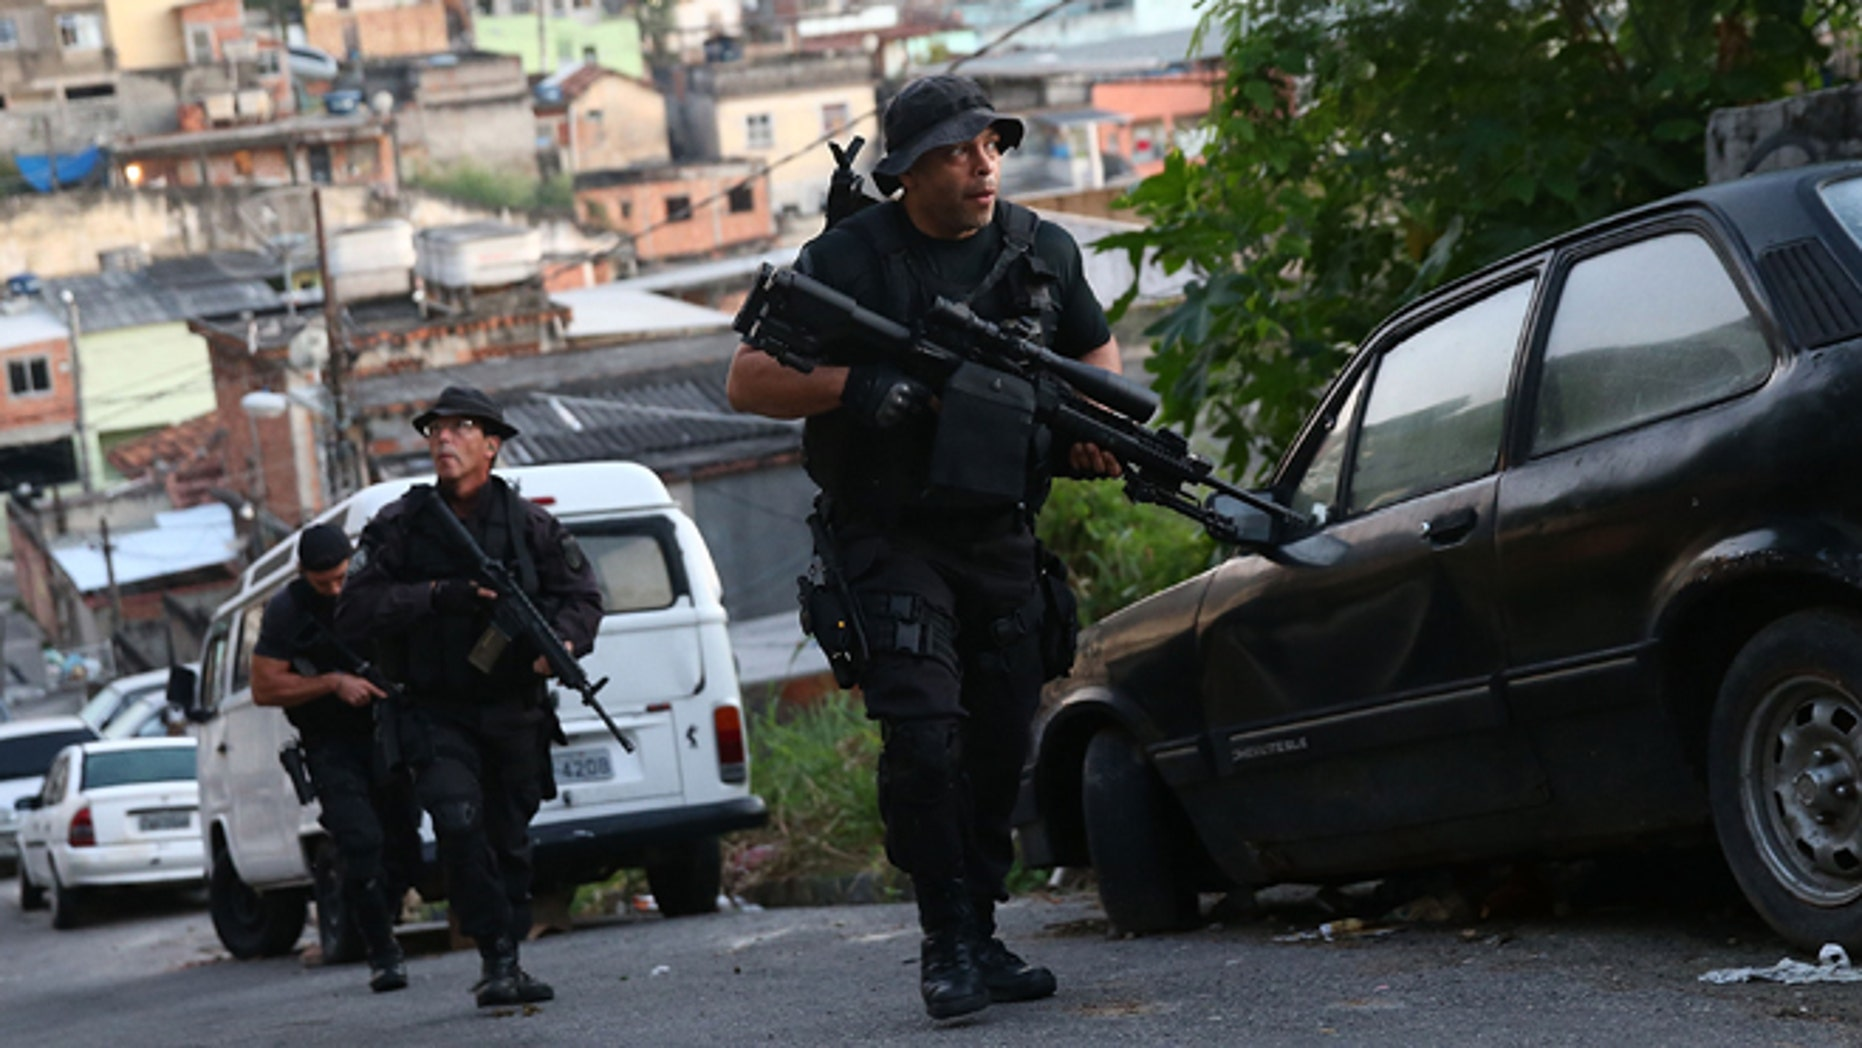 RIO DE JANEIRO, BRAZIL - MAY 13:  Officers from the CORE police special forces patrol during an operation to search for fugitives in the Complexo do Alemao pacified community, or 'favela' on May 13, 2014 in Rio de Janeiro, Brazil. Ahead of the 2014 FIFA World Cup, Rio has seen an uptick in violence in its pacified slums. A total of around 1.6 million Rio residents live in shantytowns, many of which are controlled by drug traffickers.  (Photo by Mario Tama/Getty Images)